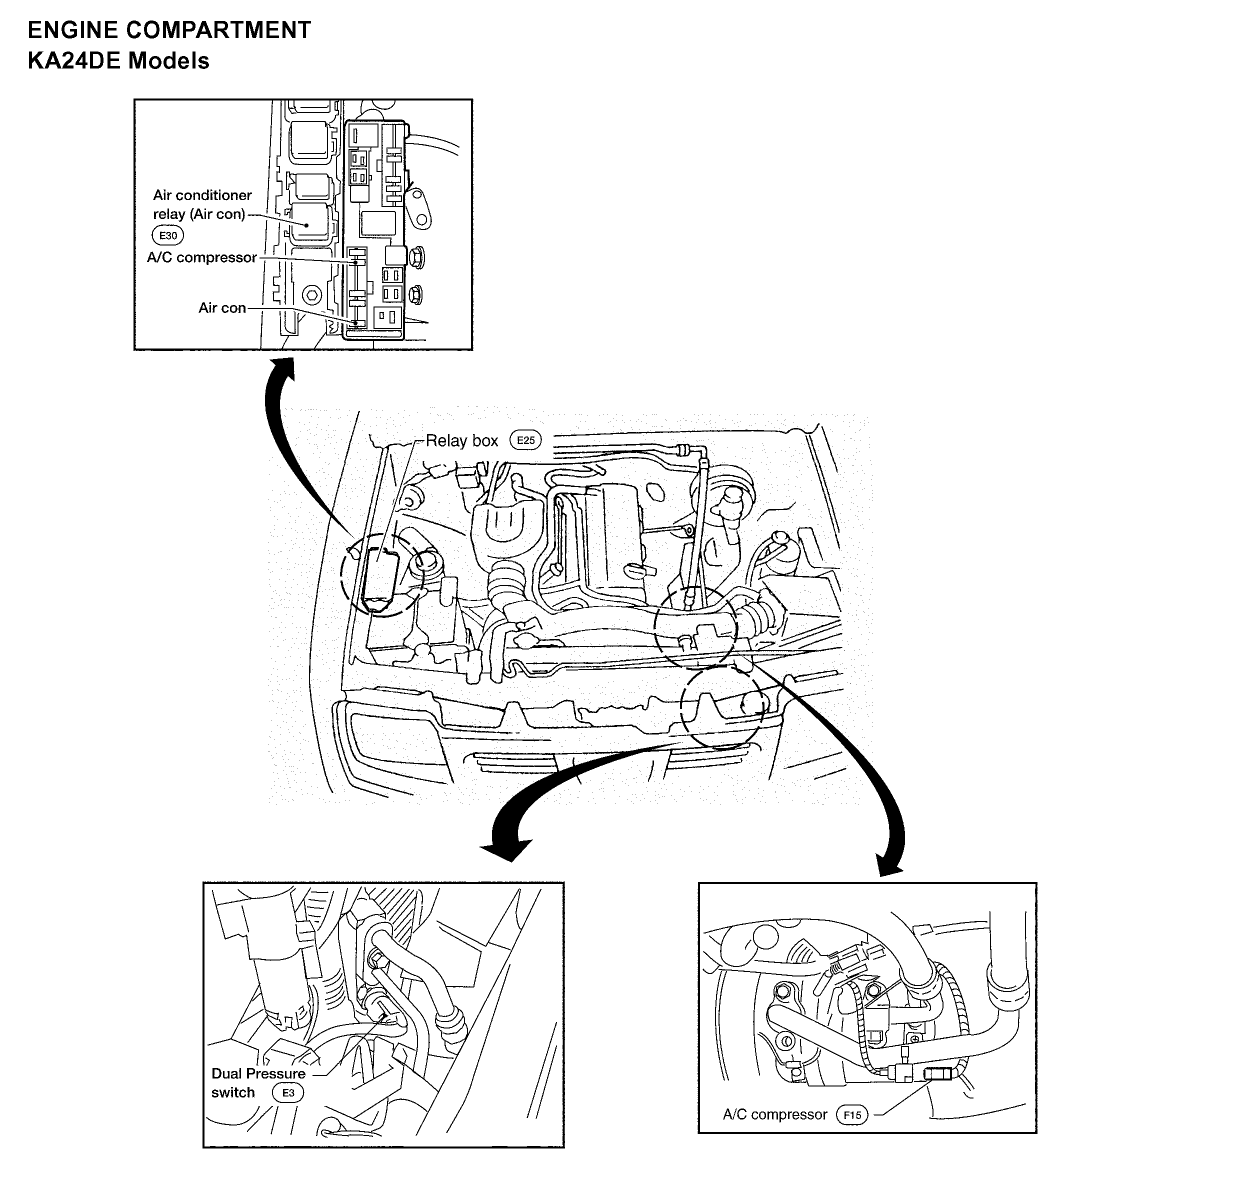 2013 Nissan Rogue Fuse Box Location in addition Index further 2007 Nissan Altima Body Parts Diagram as well Nissan Pathfinder Fuse Box Location Youtube additionally 2013 Hyundai Genesis Coupe Body Parts Diagram. on 2011 nissan rogue starter location